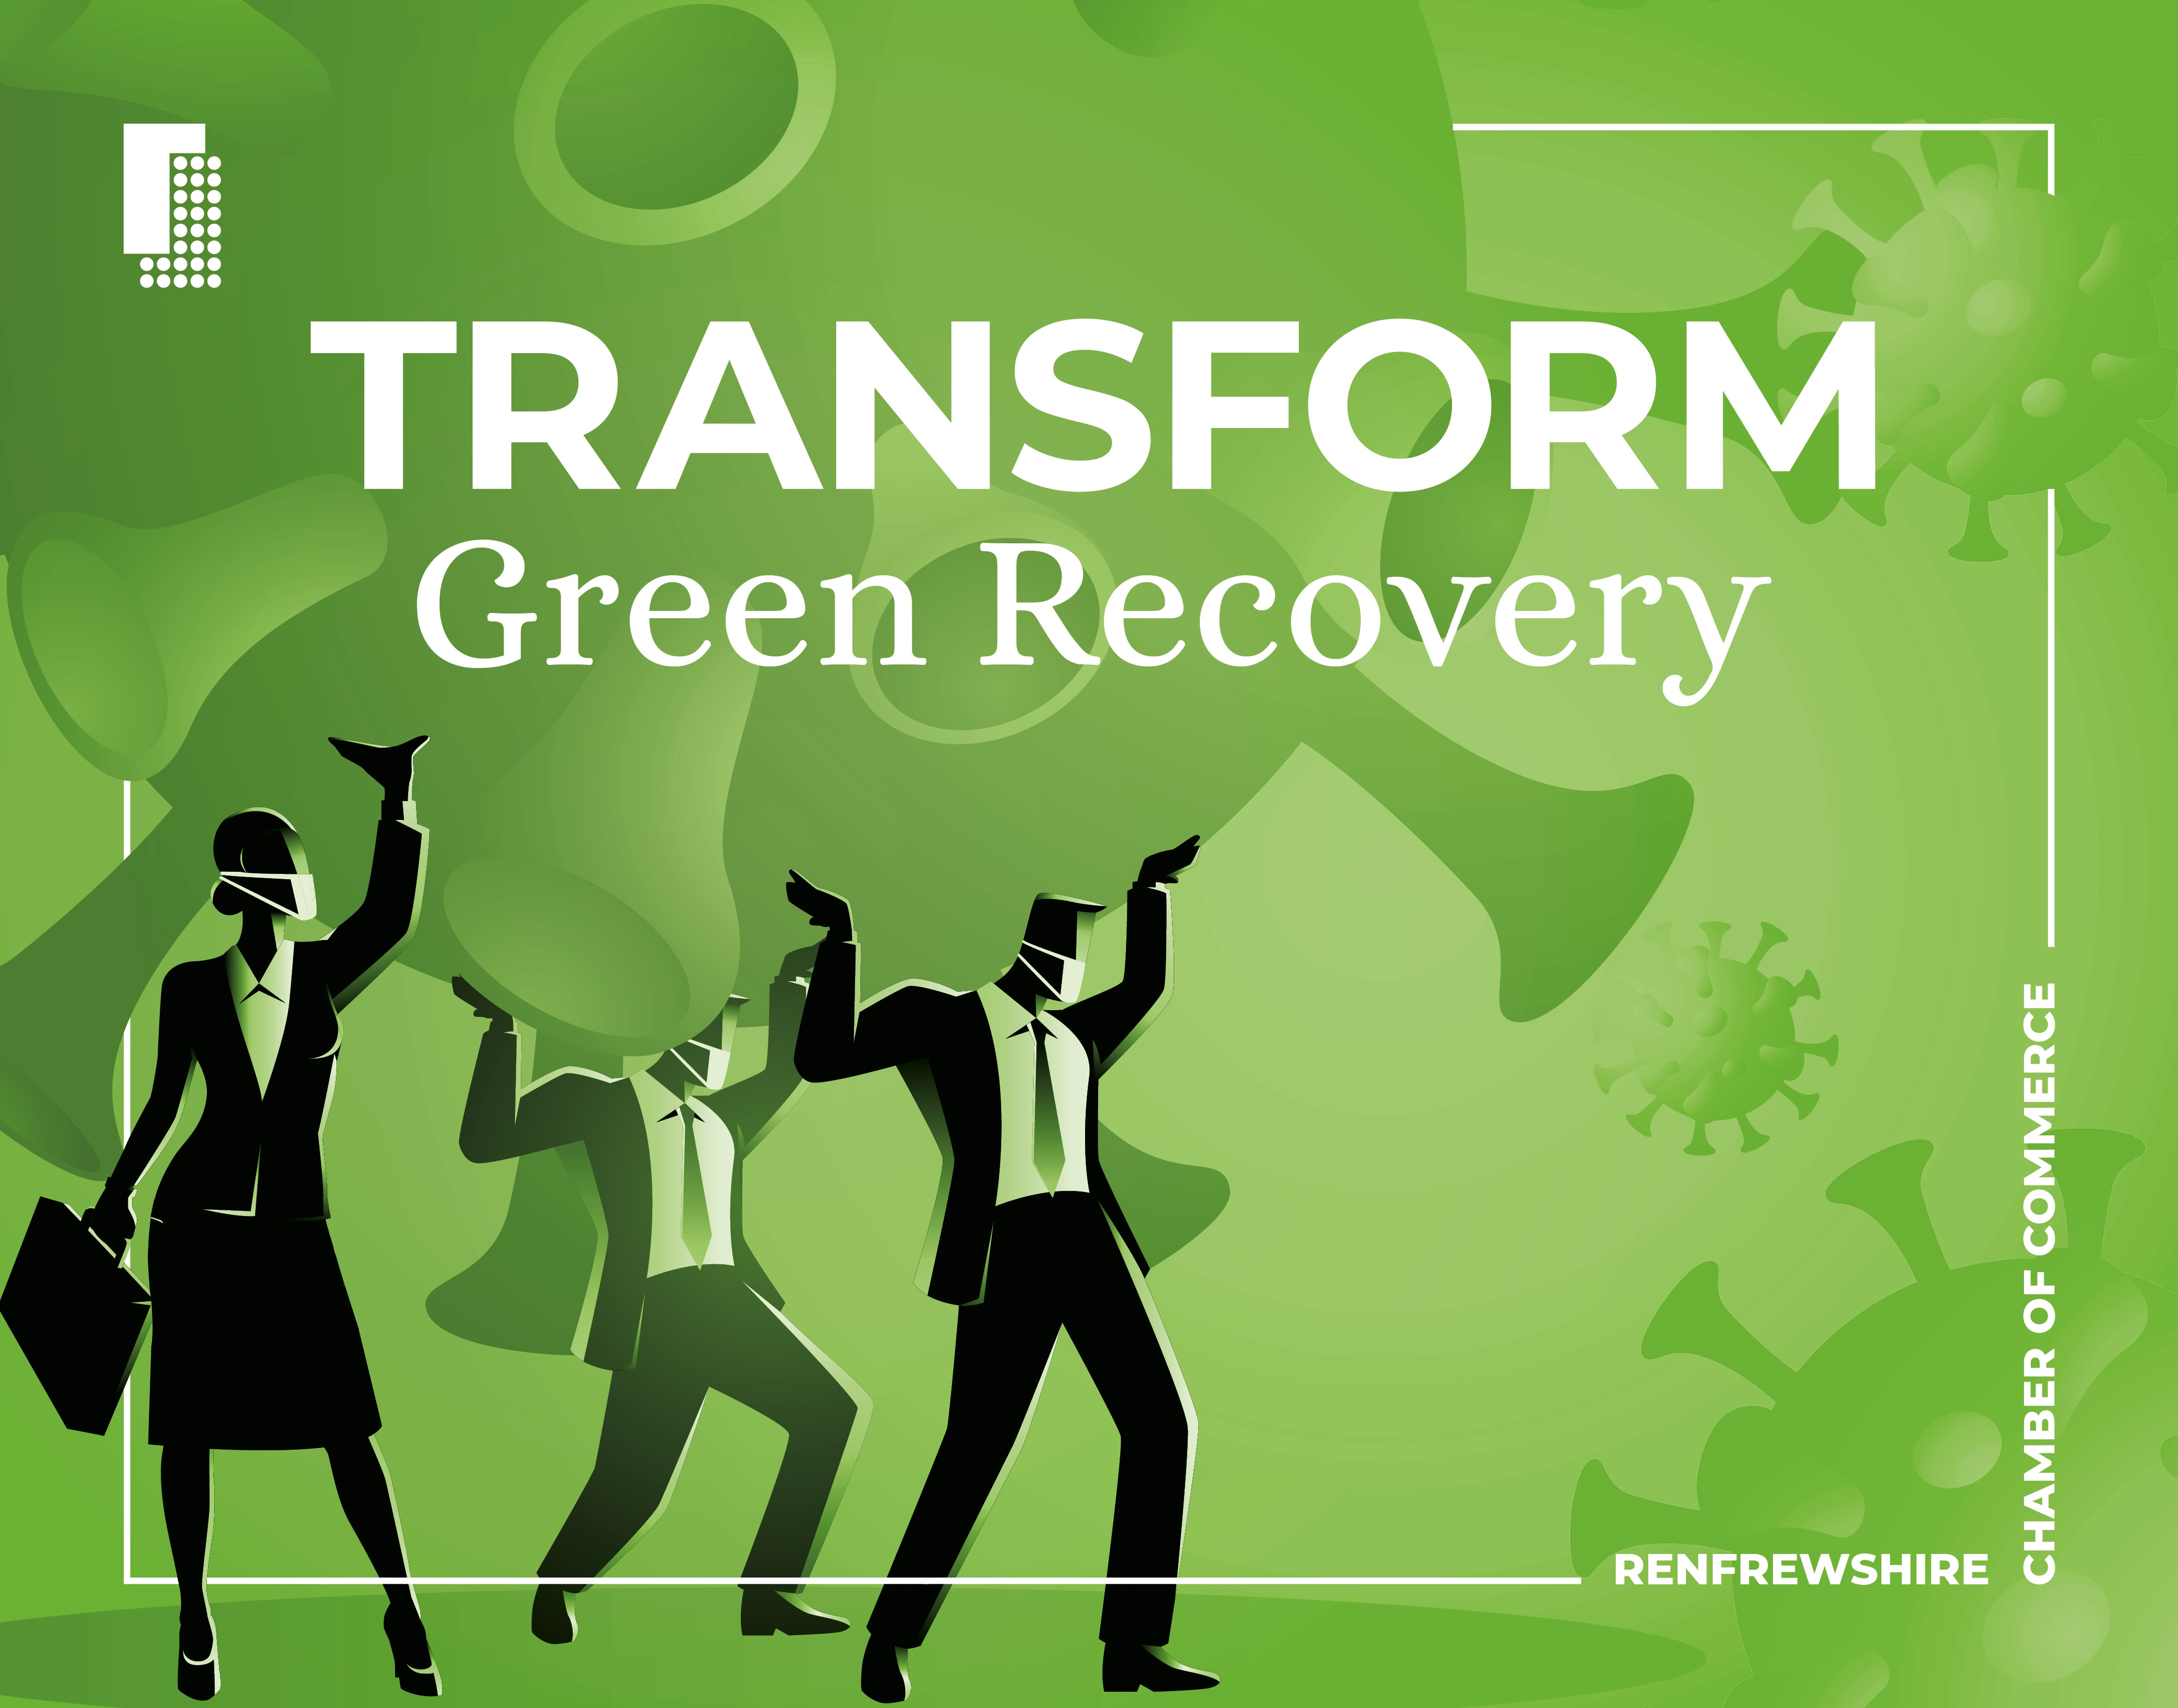 44227 Renfrewshire Chamber of Commerce - Webinar Graphics - Transform Green Recovery